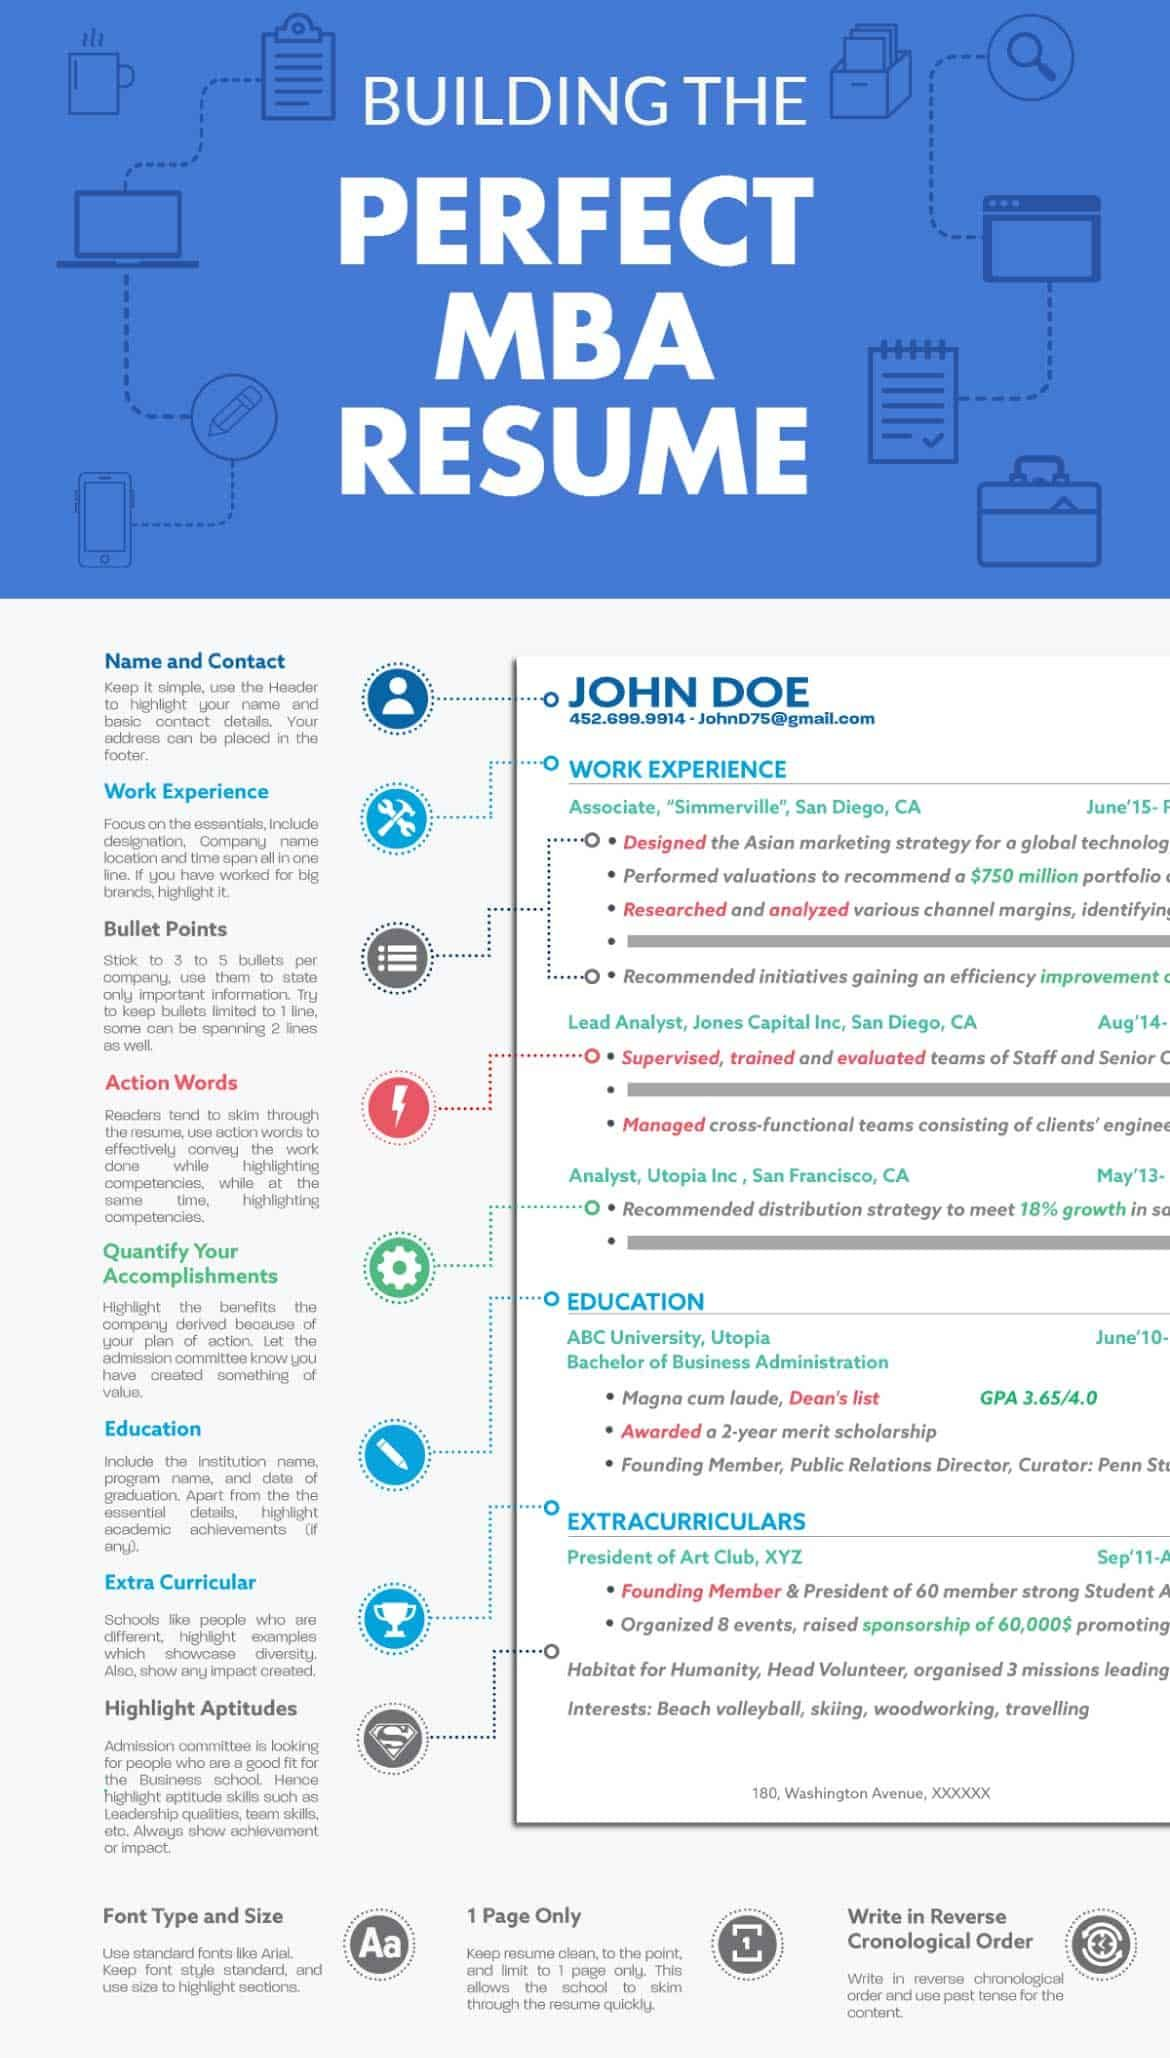 10 Steps Towards Creating the Perfect MBA Resume in 2020